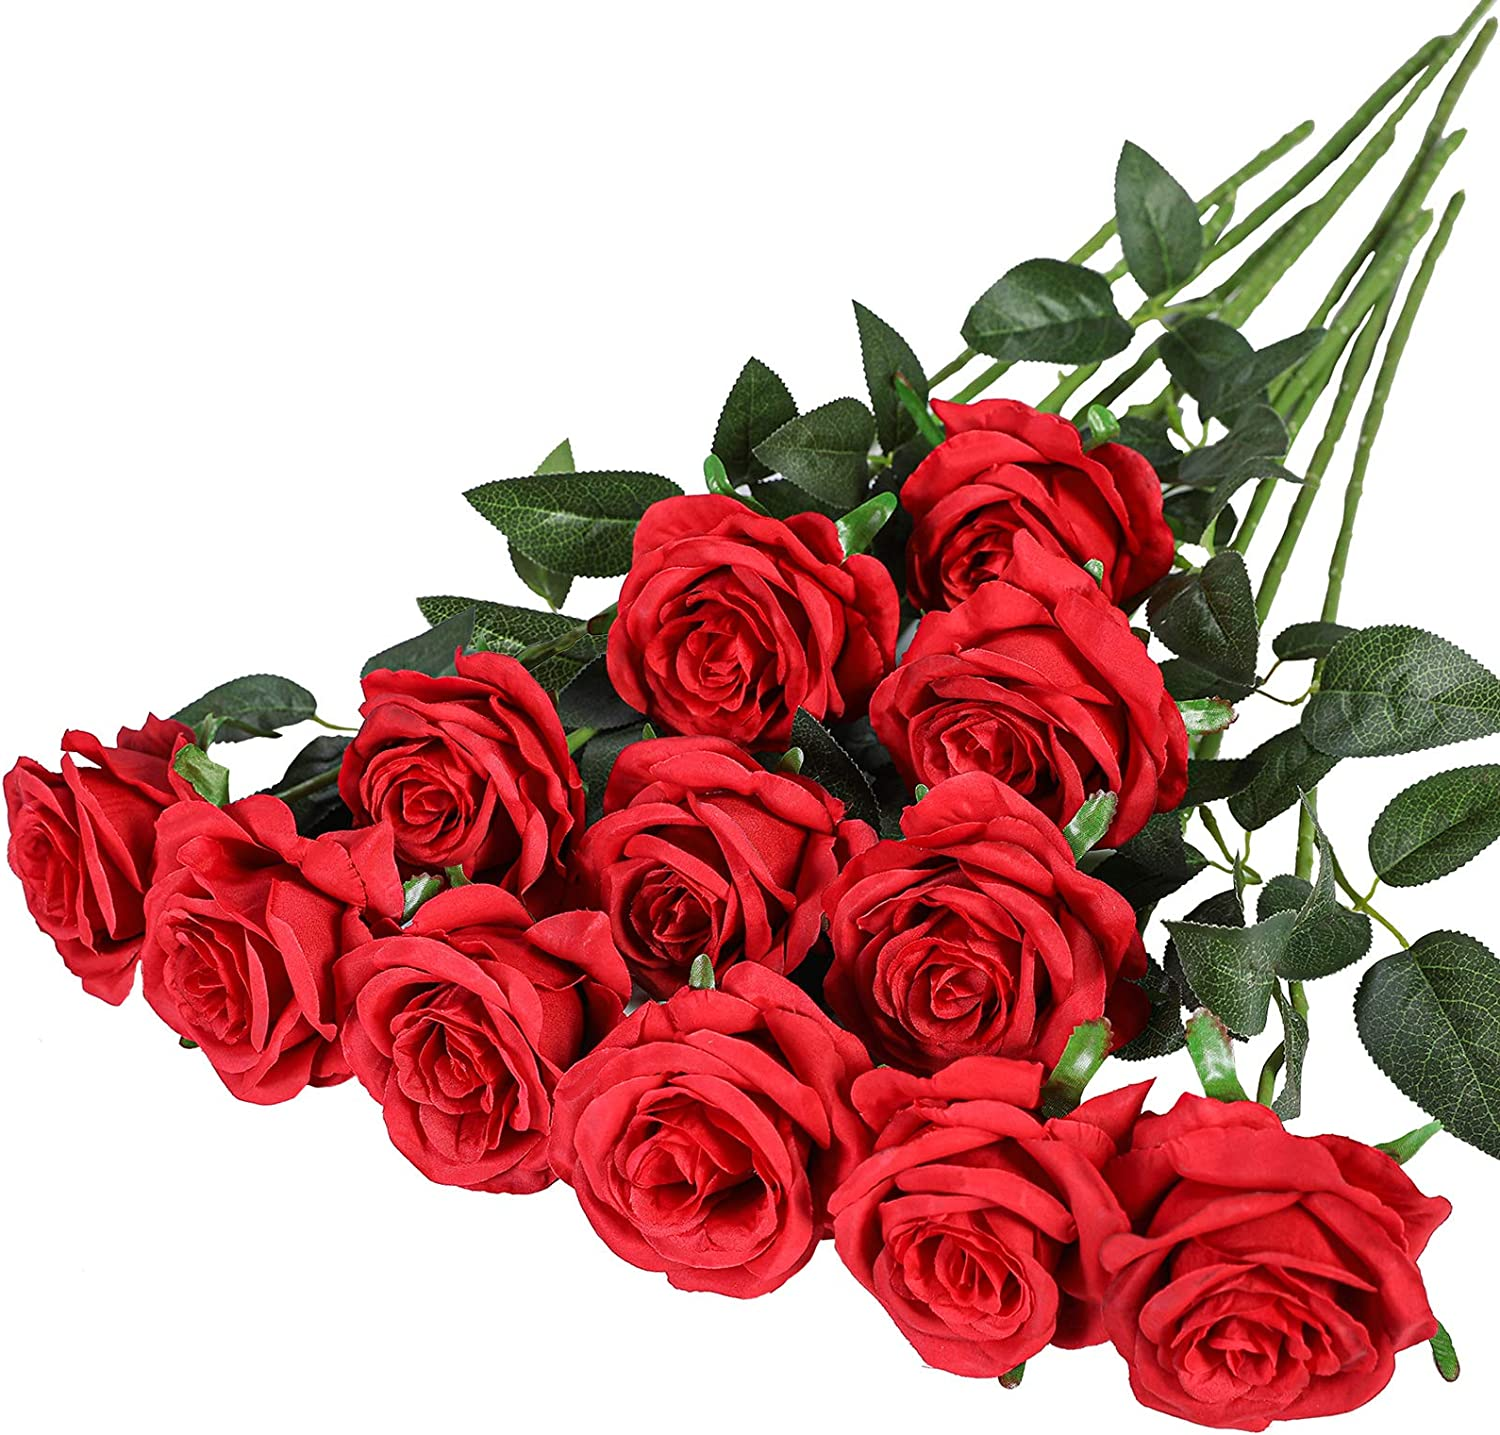 Hawesome 12PCS Artificial Roses Flowers Silk Realistic Blossom Roses Bridal Wedding Bouquet Long Stem for Home Wedding Decoration Party 12pcs-red